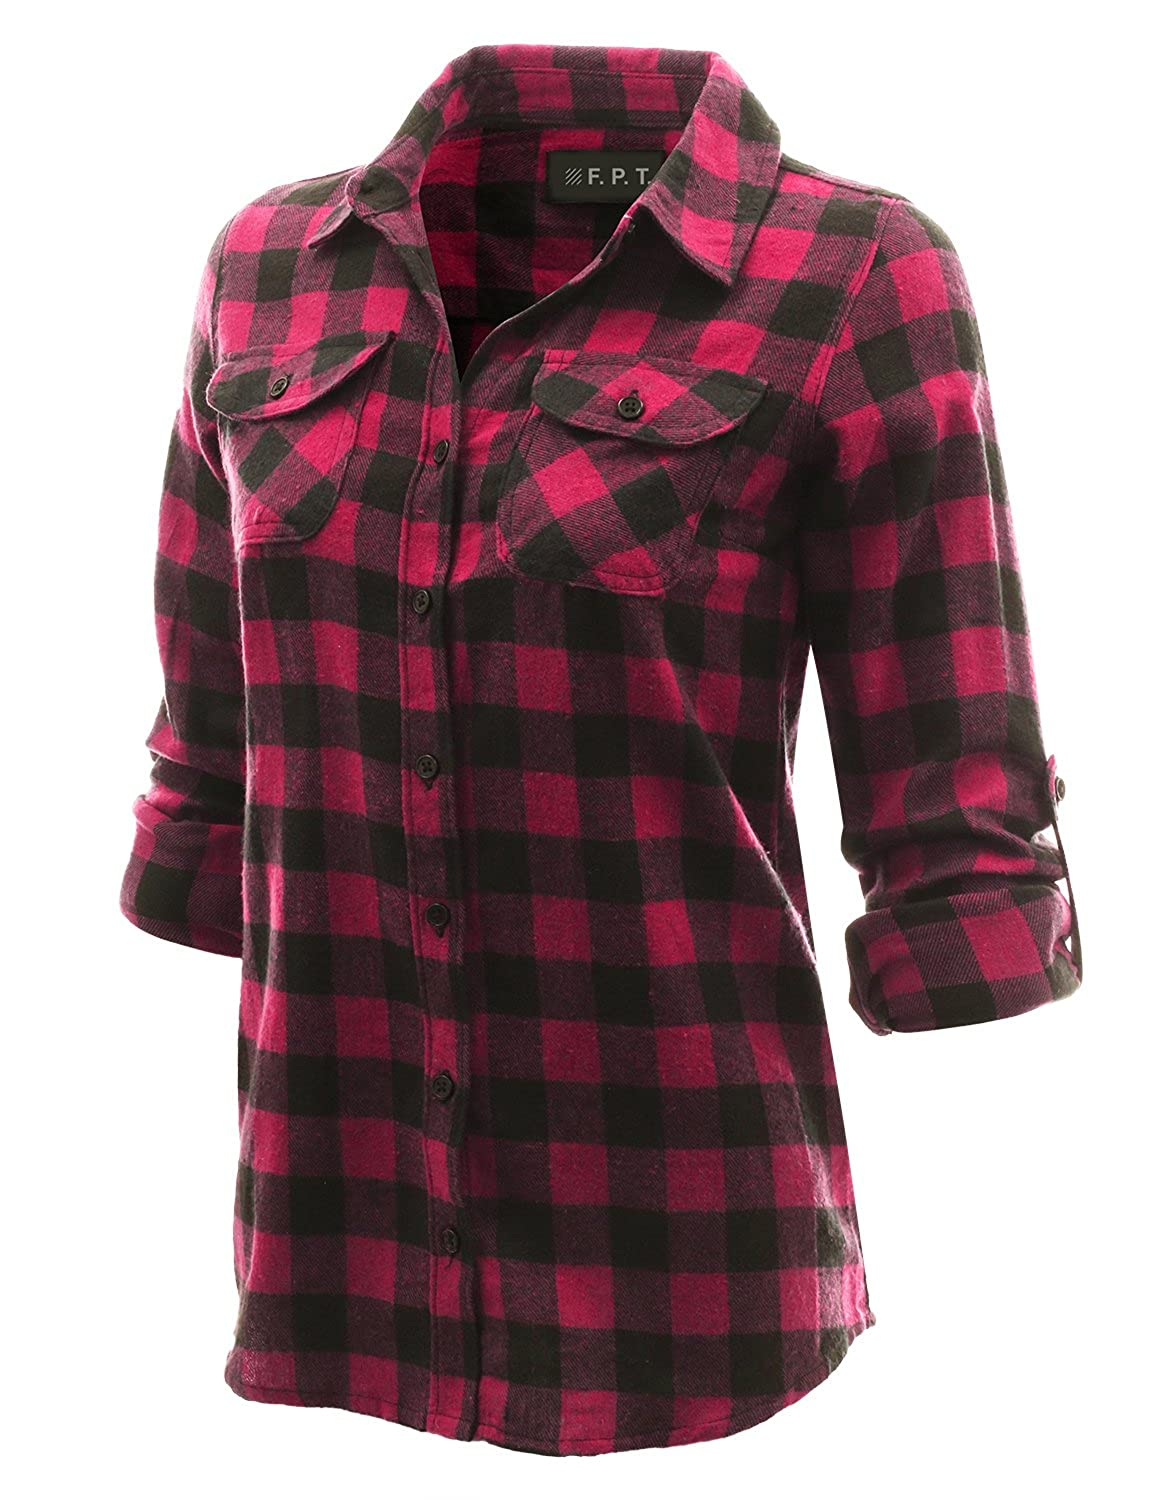 Bwpepr068_magenta Fifth Parallel Threads Women's Roll Up Long Sleeve Cotton Plaid Button Down Shirt BlackRed